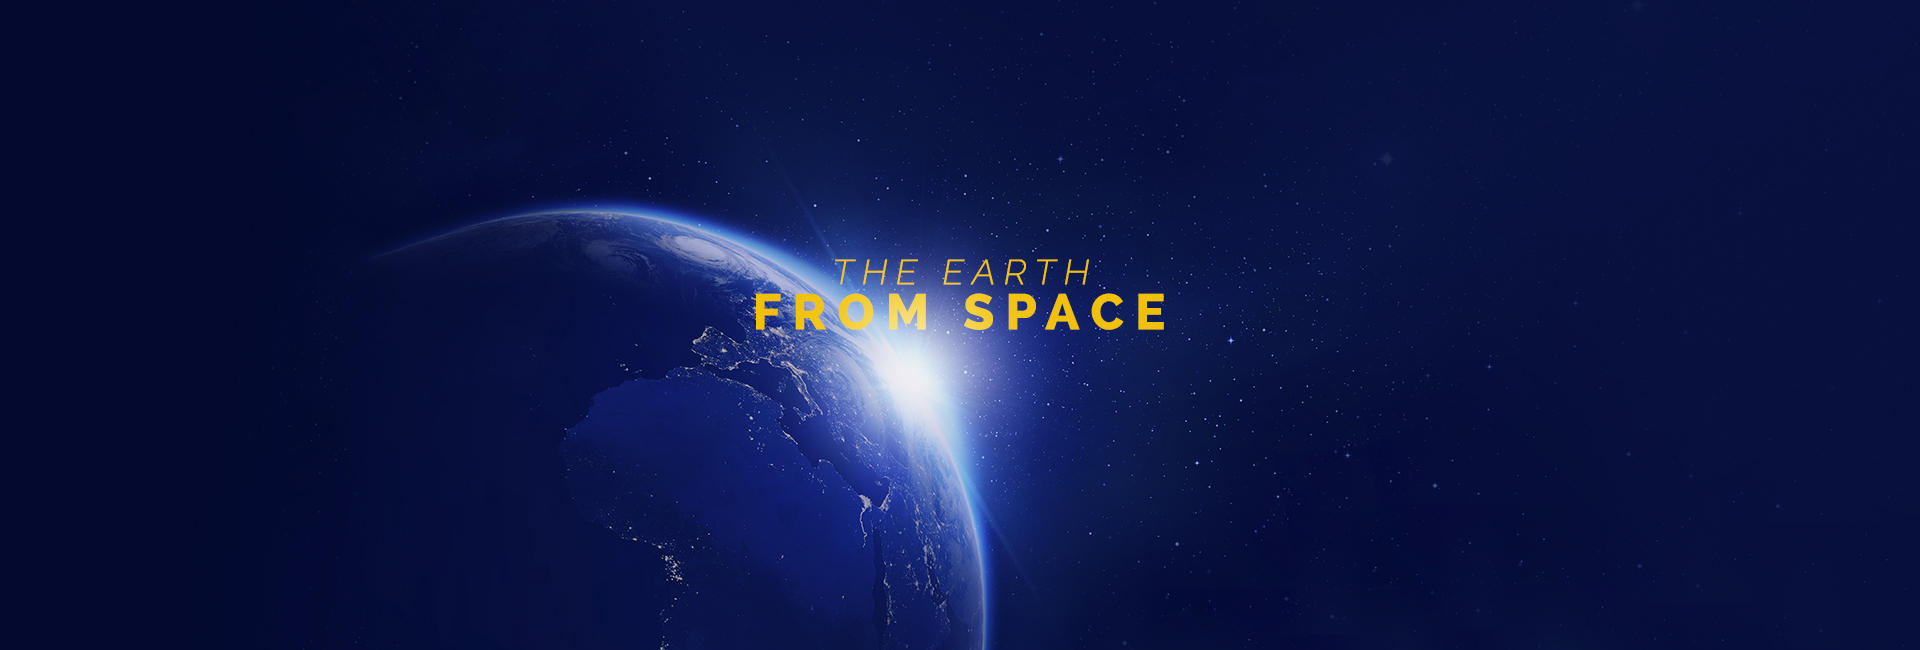 The earth from space